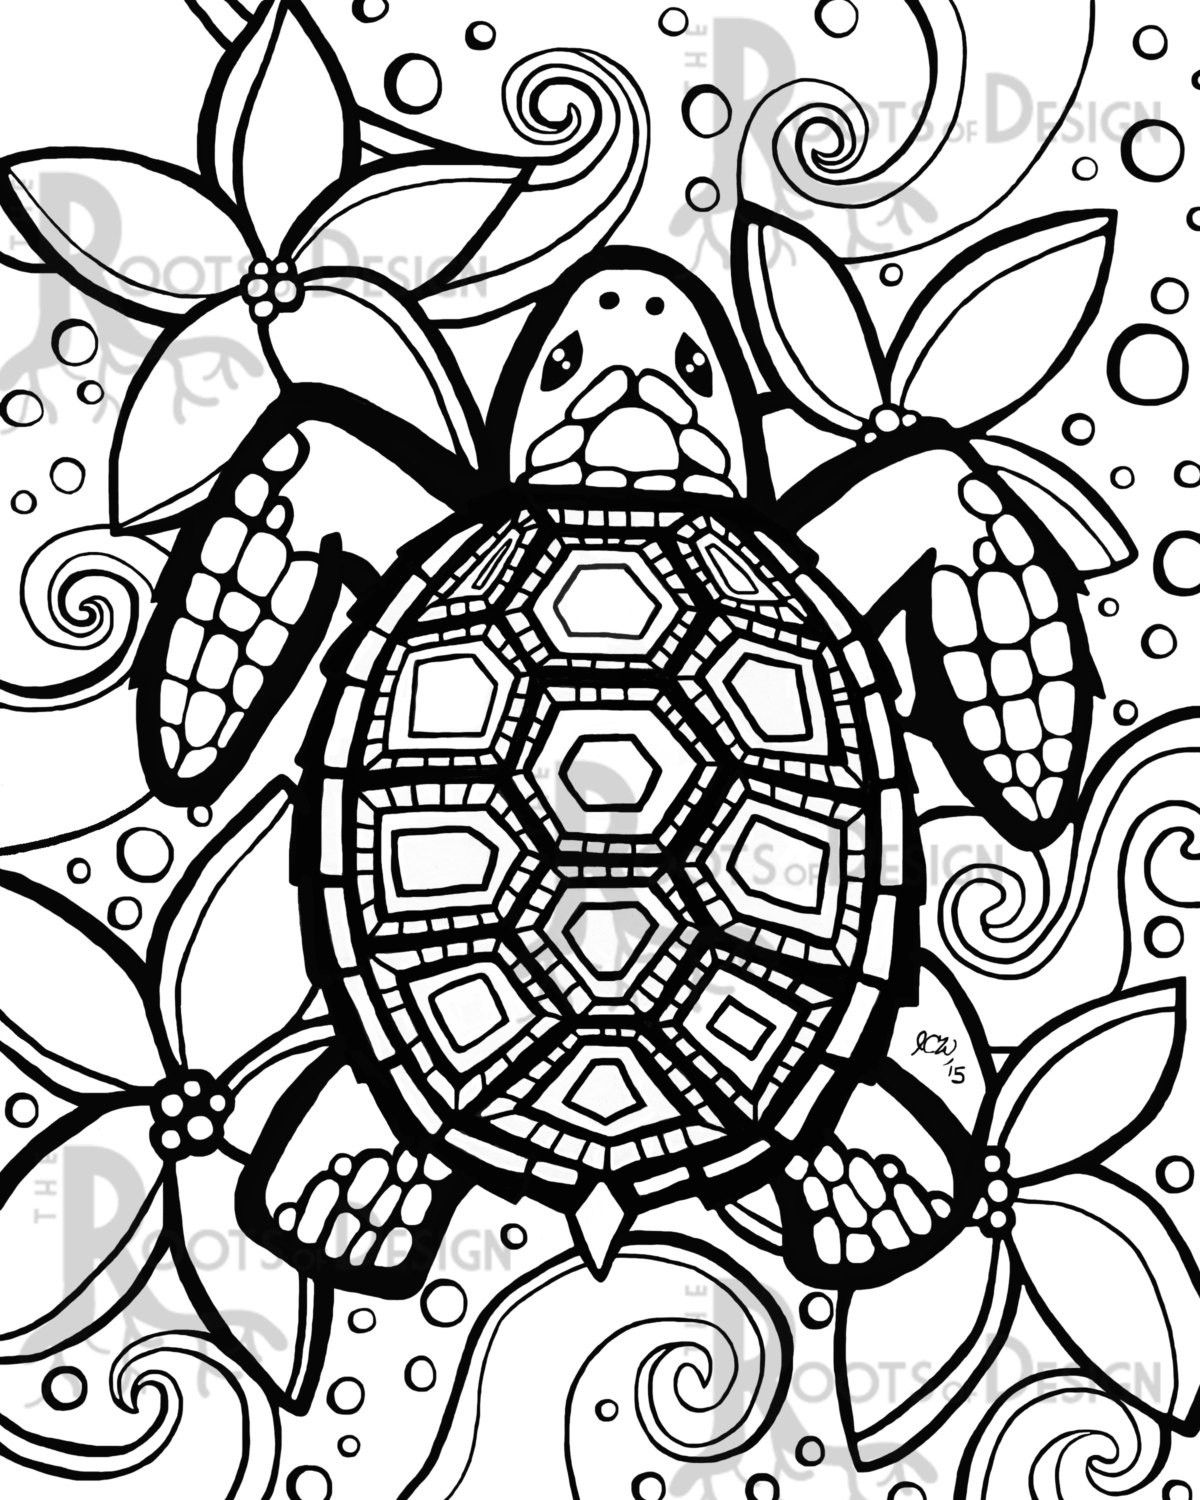 Parking Turtle Coloring Page Youngandtae Com Mandala Coloring Pages Mandala Coloring Turtle Coloring Pages